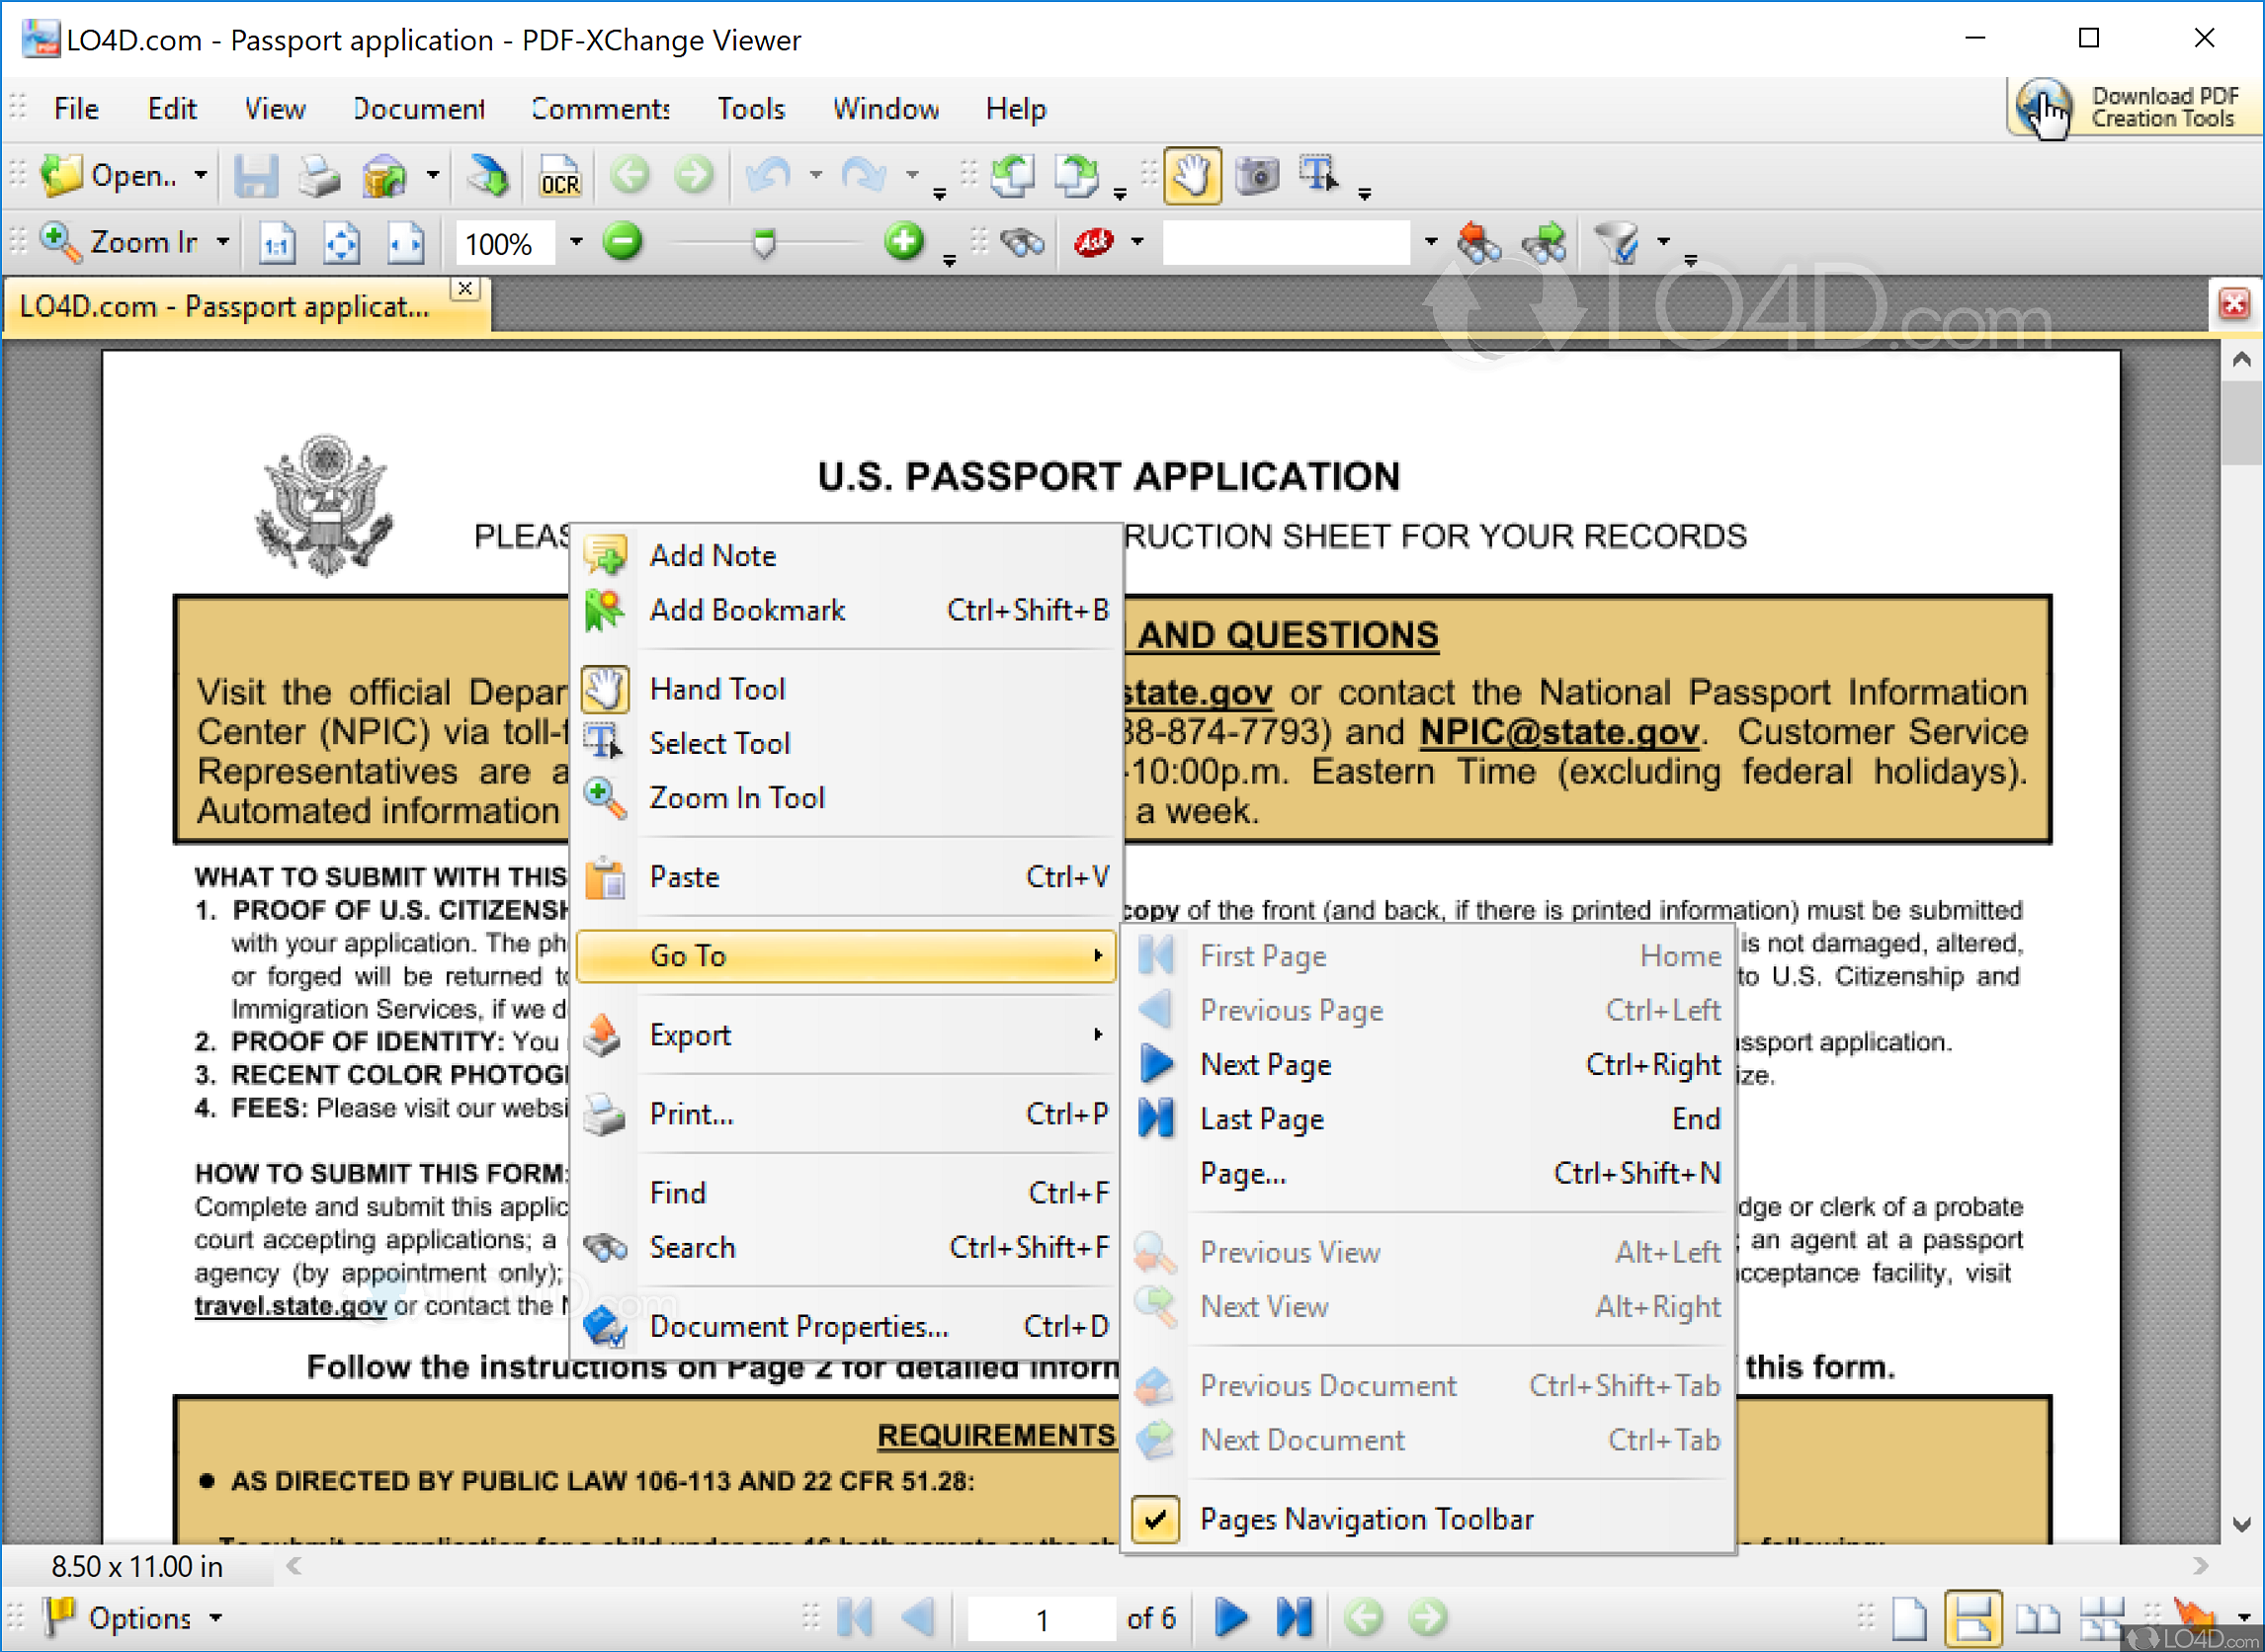 pdf xchange viewer download for windows 10 64 bit